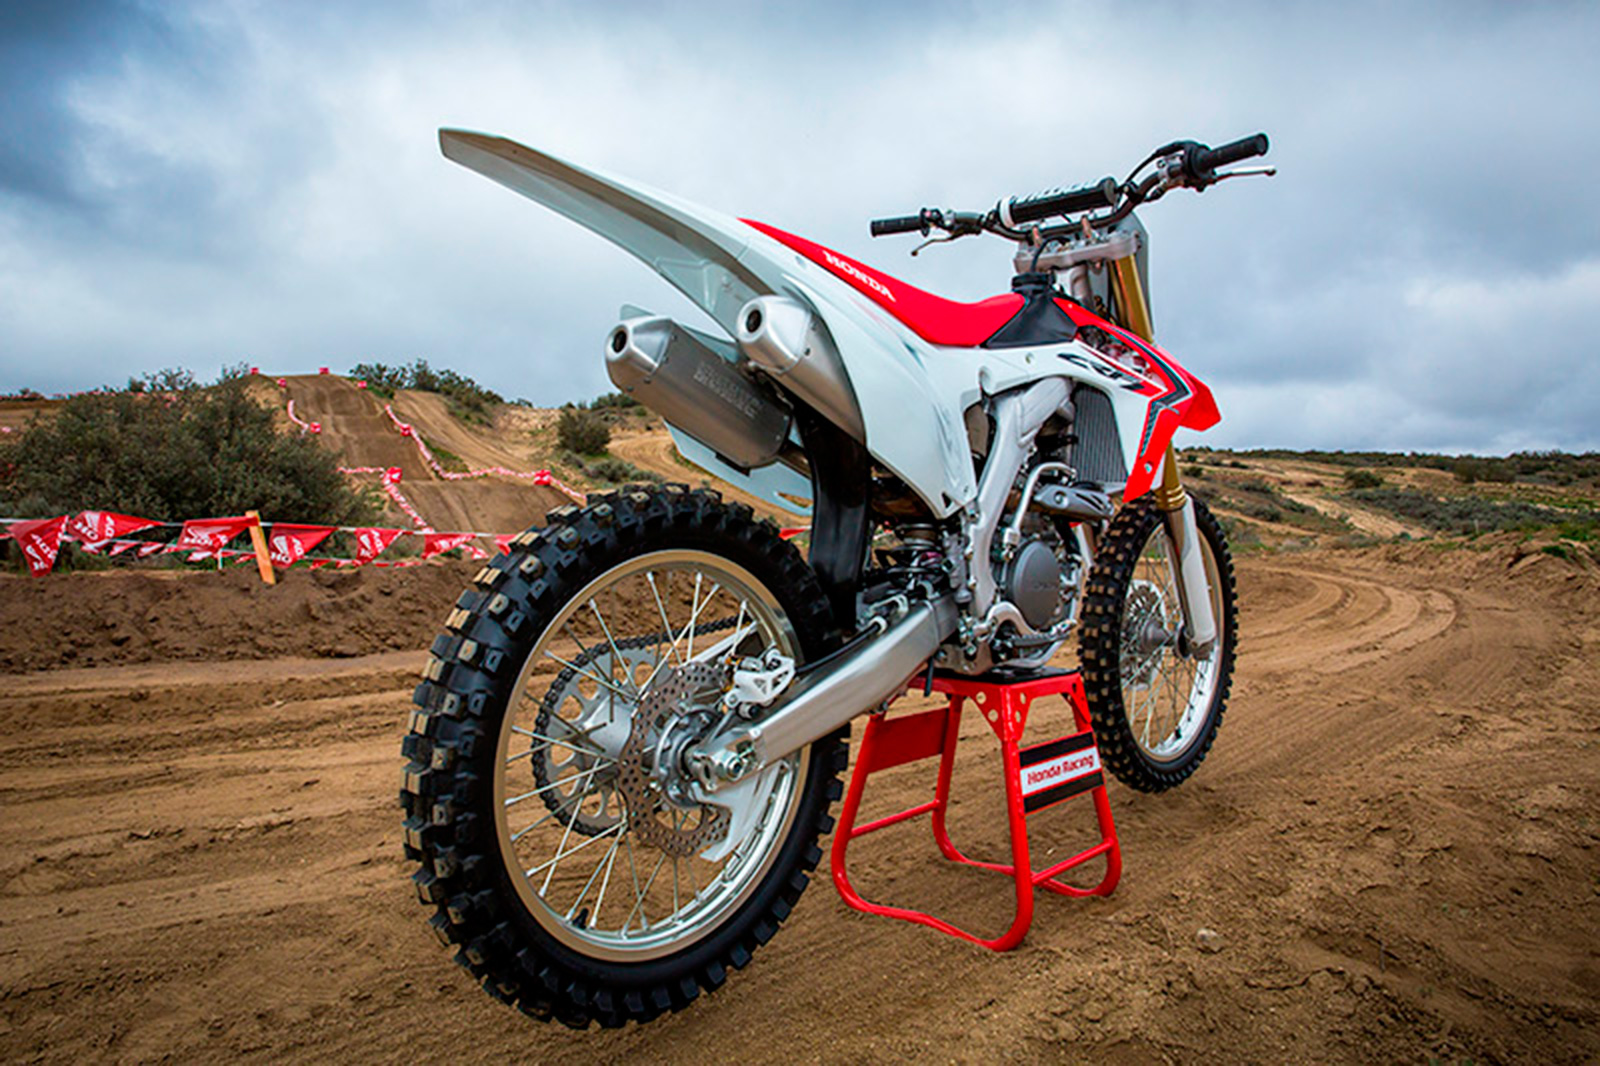 2013 honda crf 250 r pics specs and information. Black Bedroom Furniture Sets. Home Design Ideas